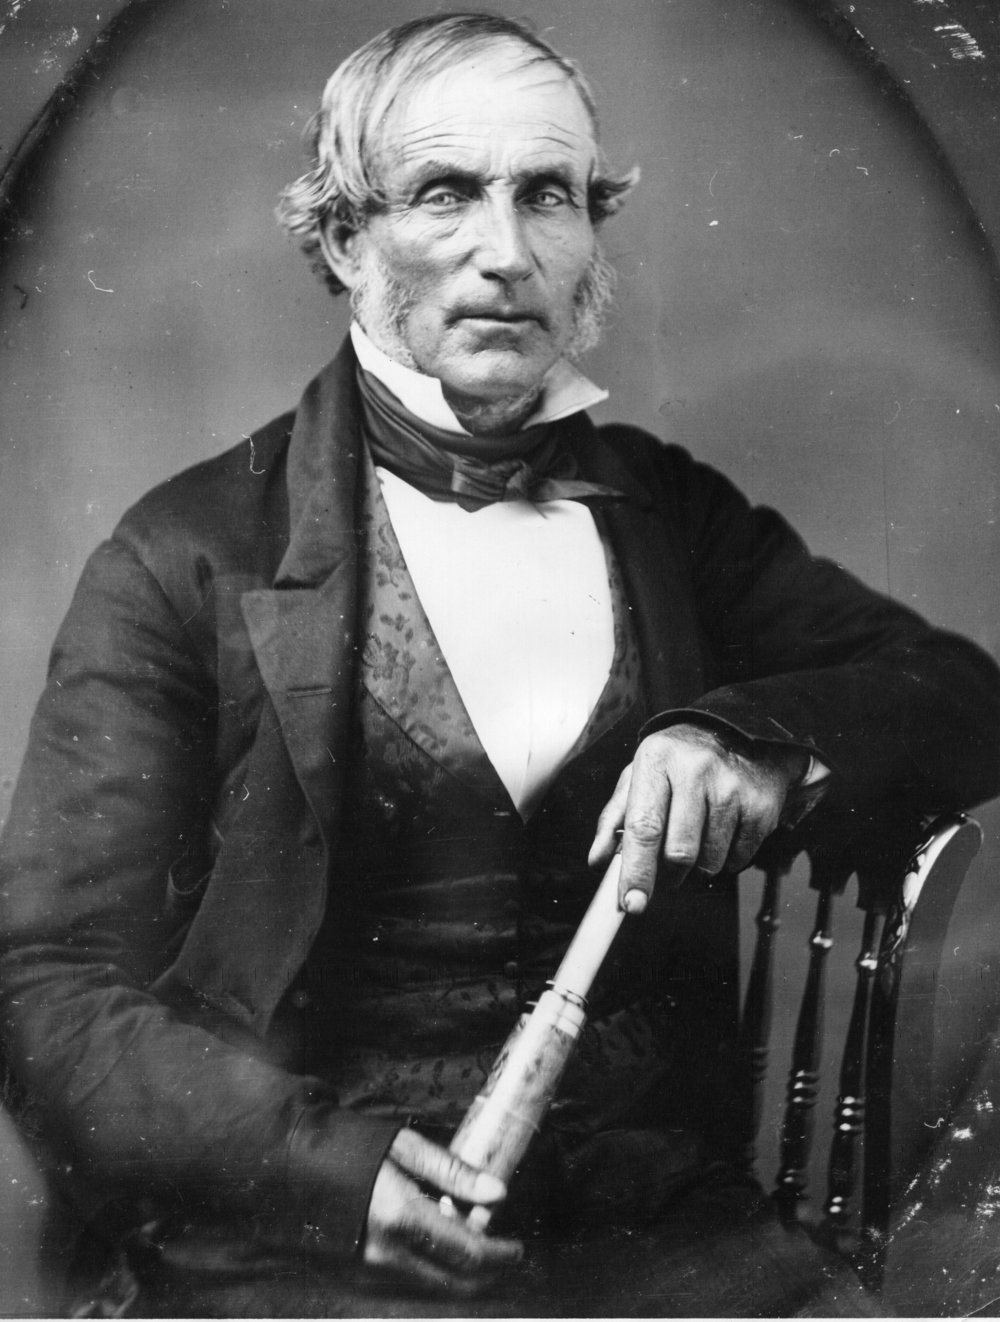 The only known photo of William Richardson, founder of Sausalito, was taken c. 1854. Courtesy of Sausalito Historical Society